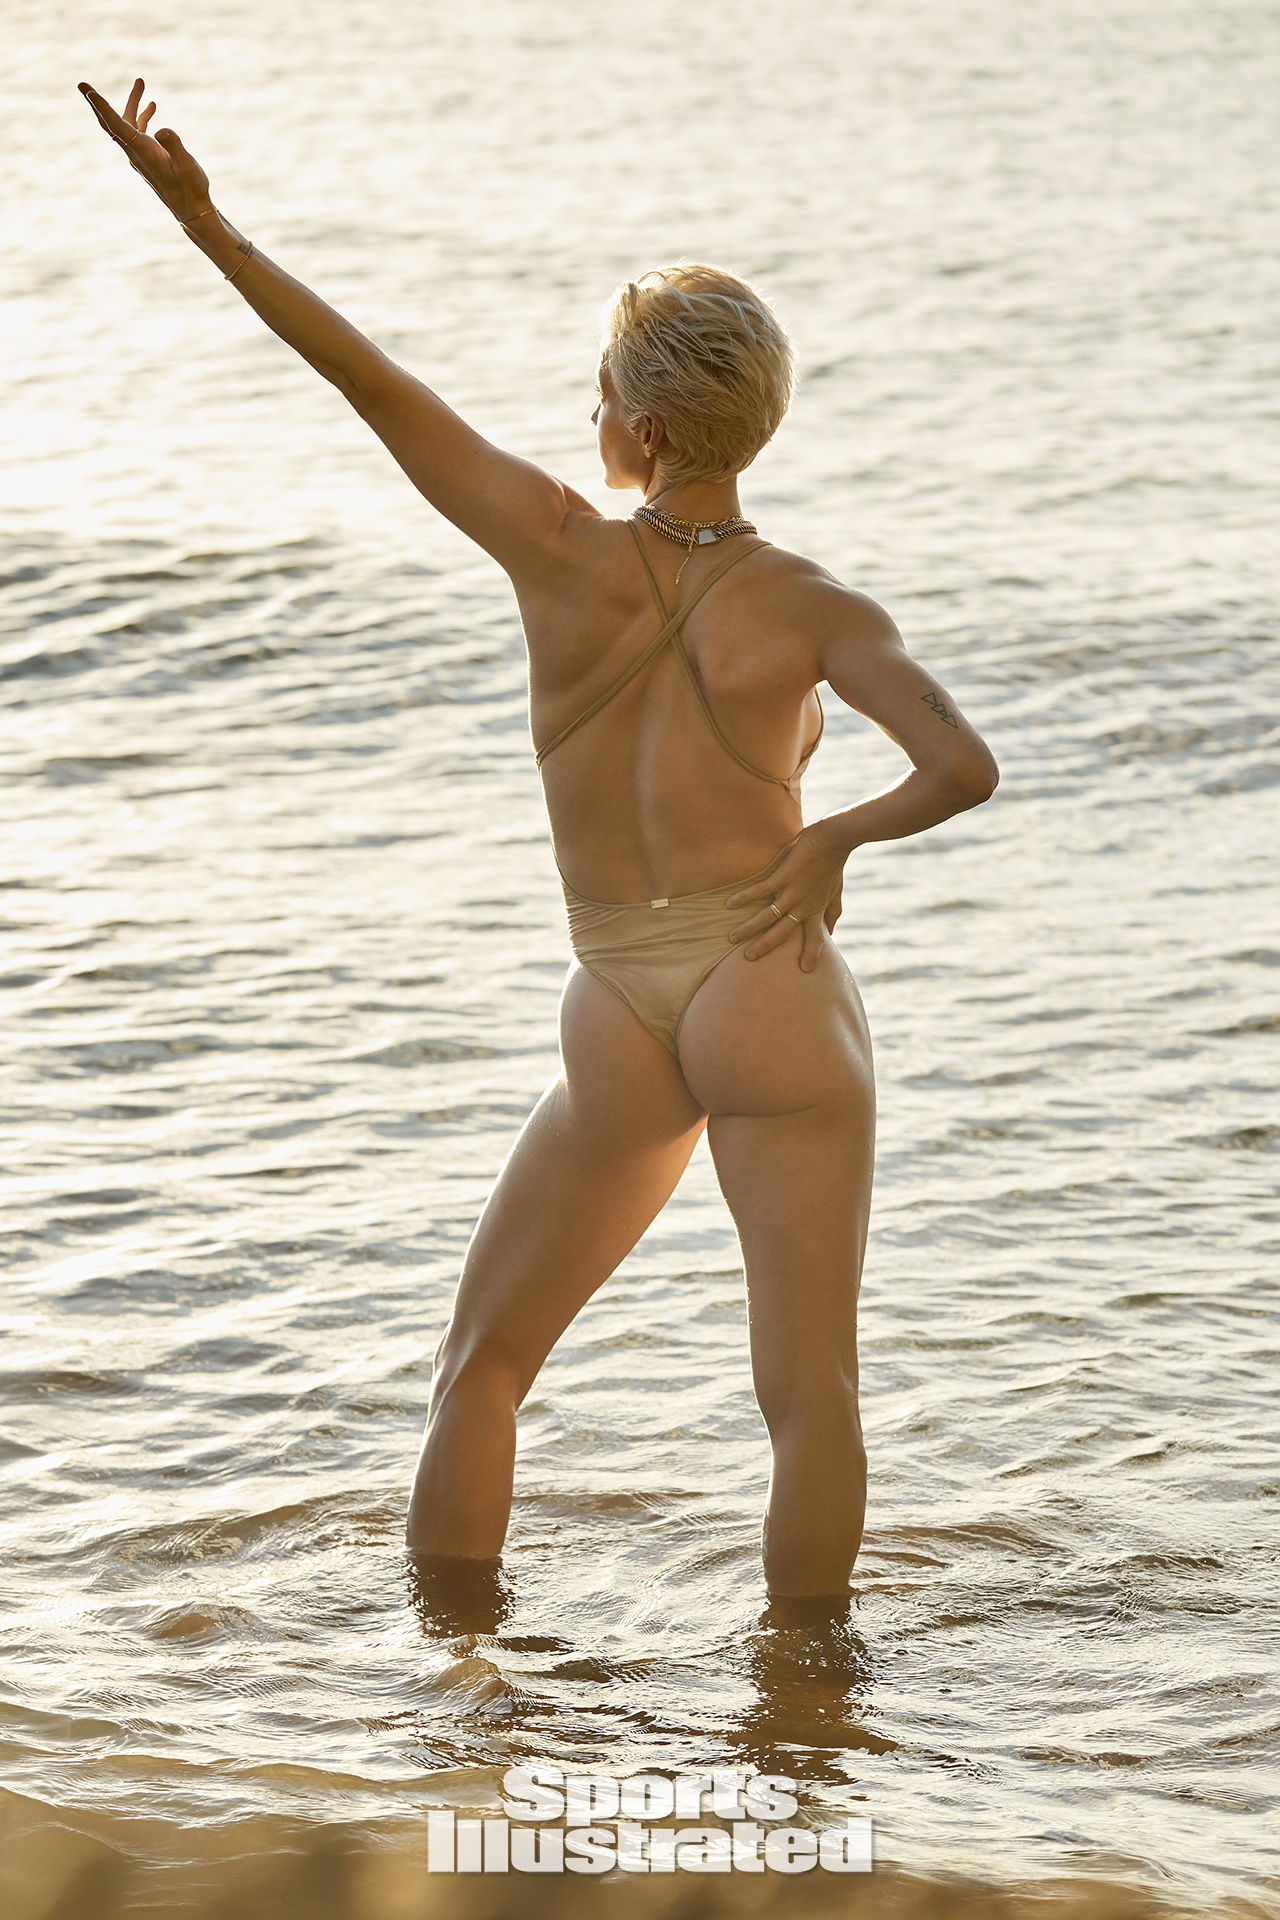 Megan Rapinoe in Sports Illustrated